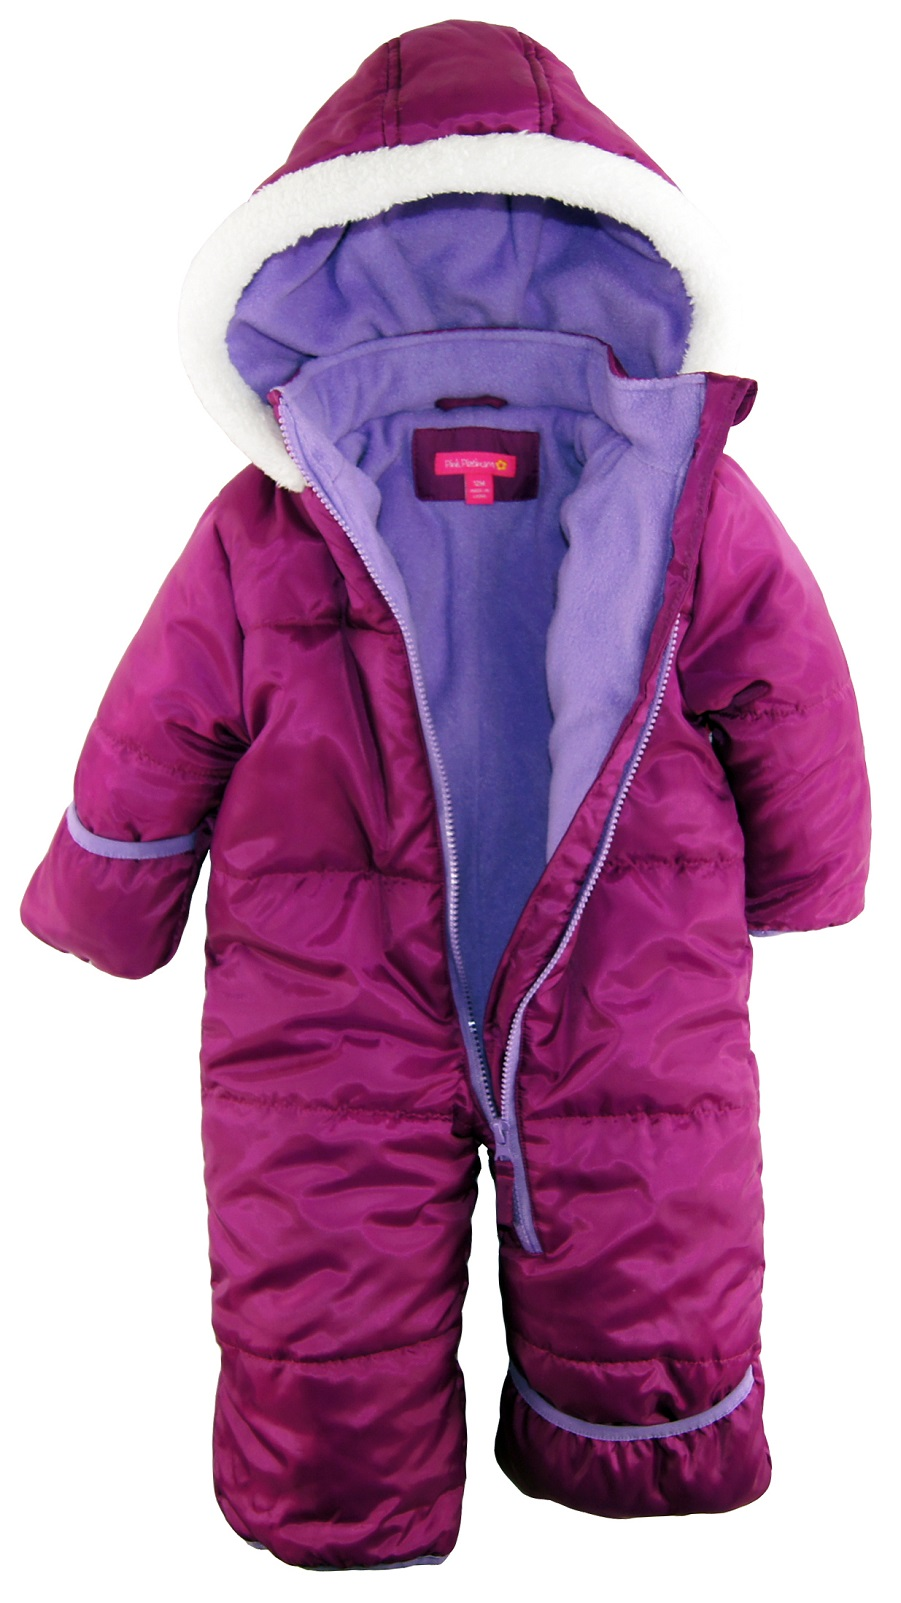 Toddler Snowsuits. invalid category id. Toddler Snowsuits. Showing 48 of results that match your query. Search Product Result. Product - Pink Platinum Baby Girls One Piece Warm Winter Puffer Snowsuit Pram Bunting, Gray, 12 Months. Reduced Price. Product Image. Price $